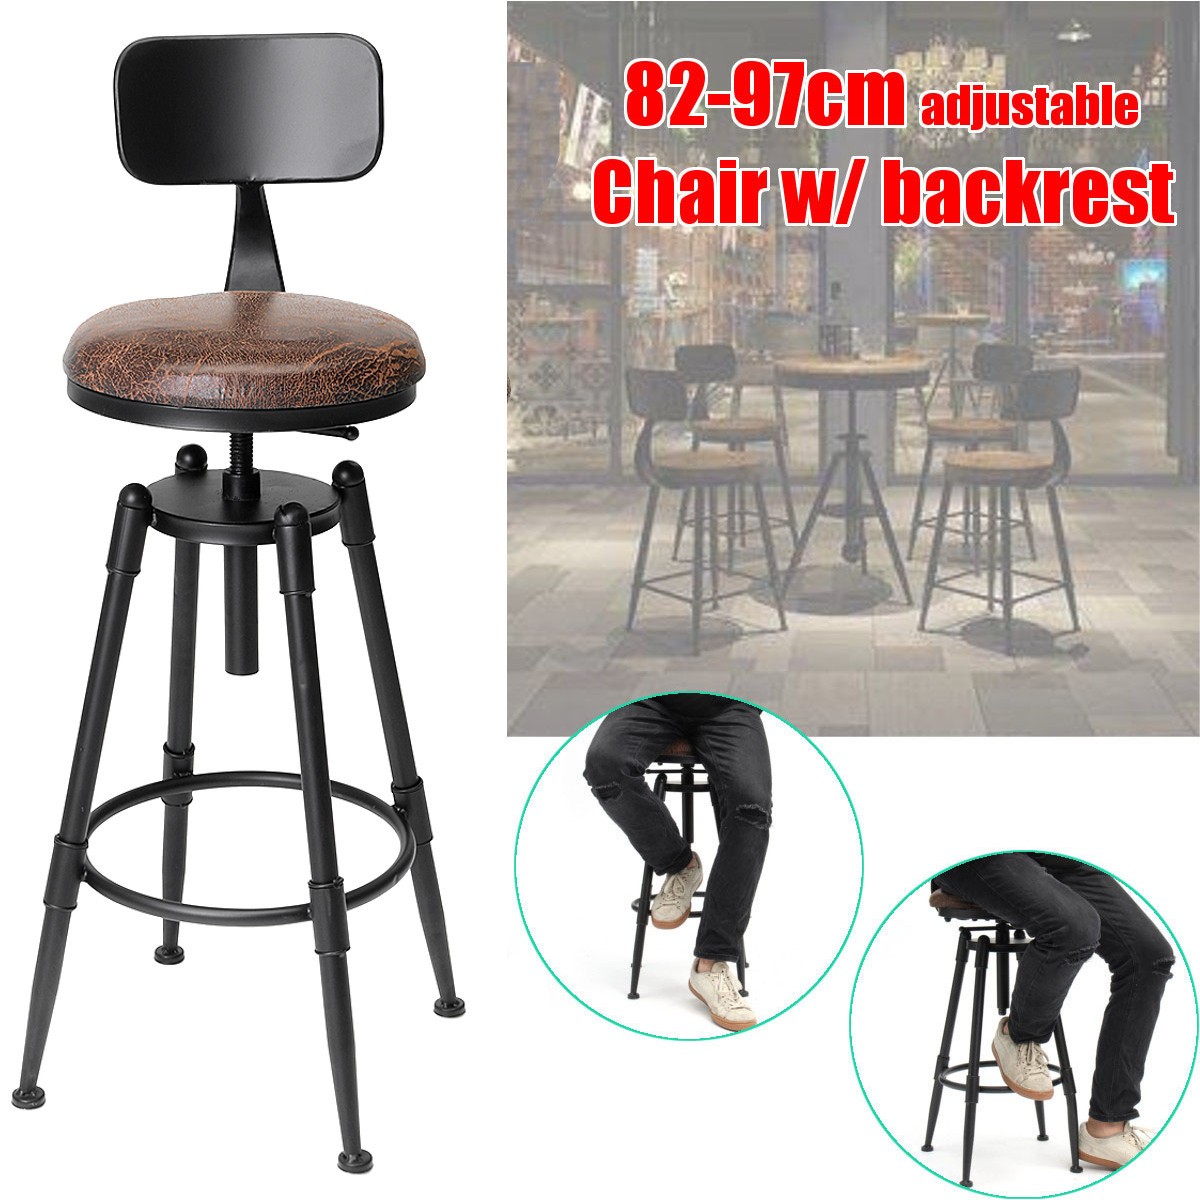 retro chair stool big and tall office chairs cheap industrial bar rustic urban style swivel cafe counter metal detail image